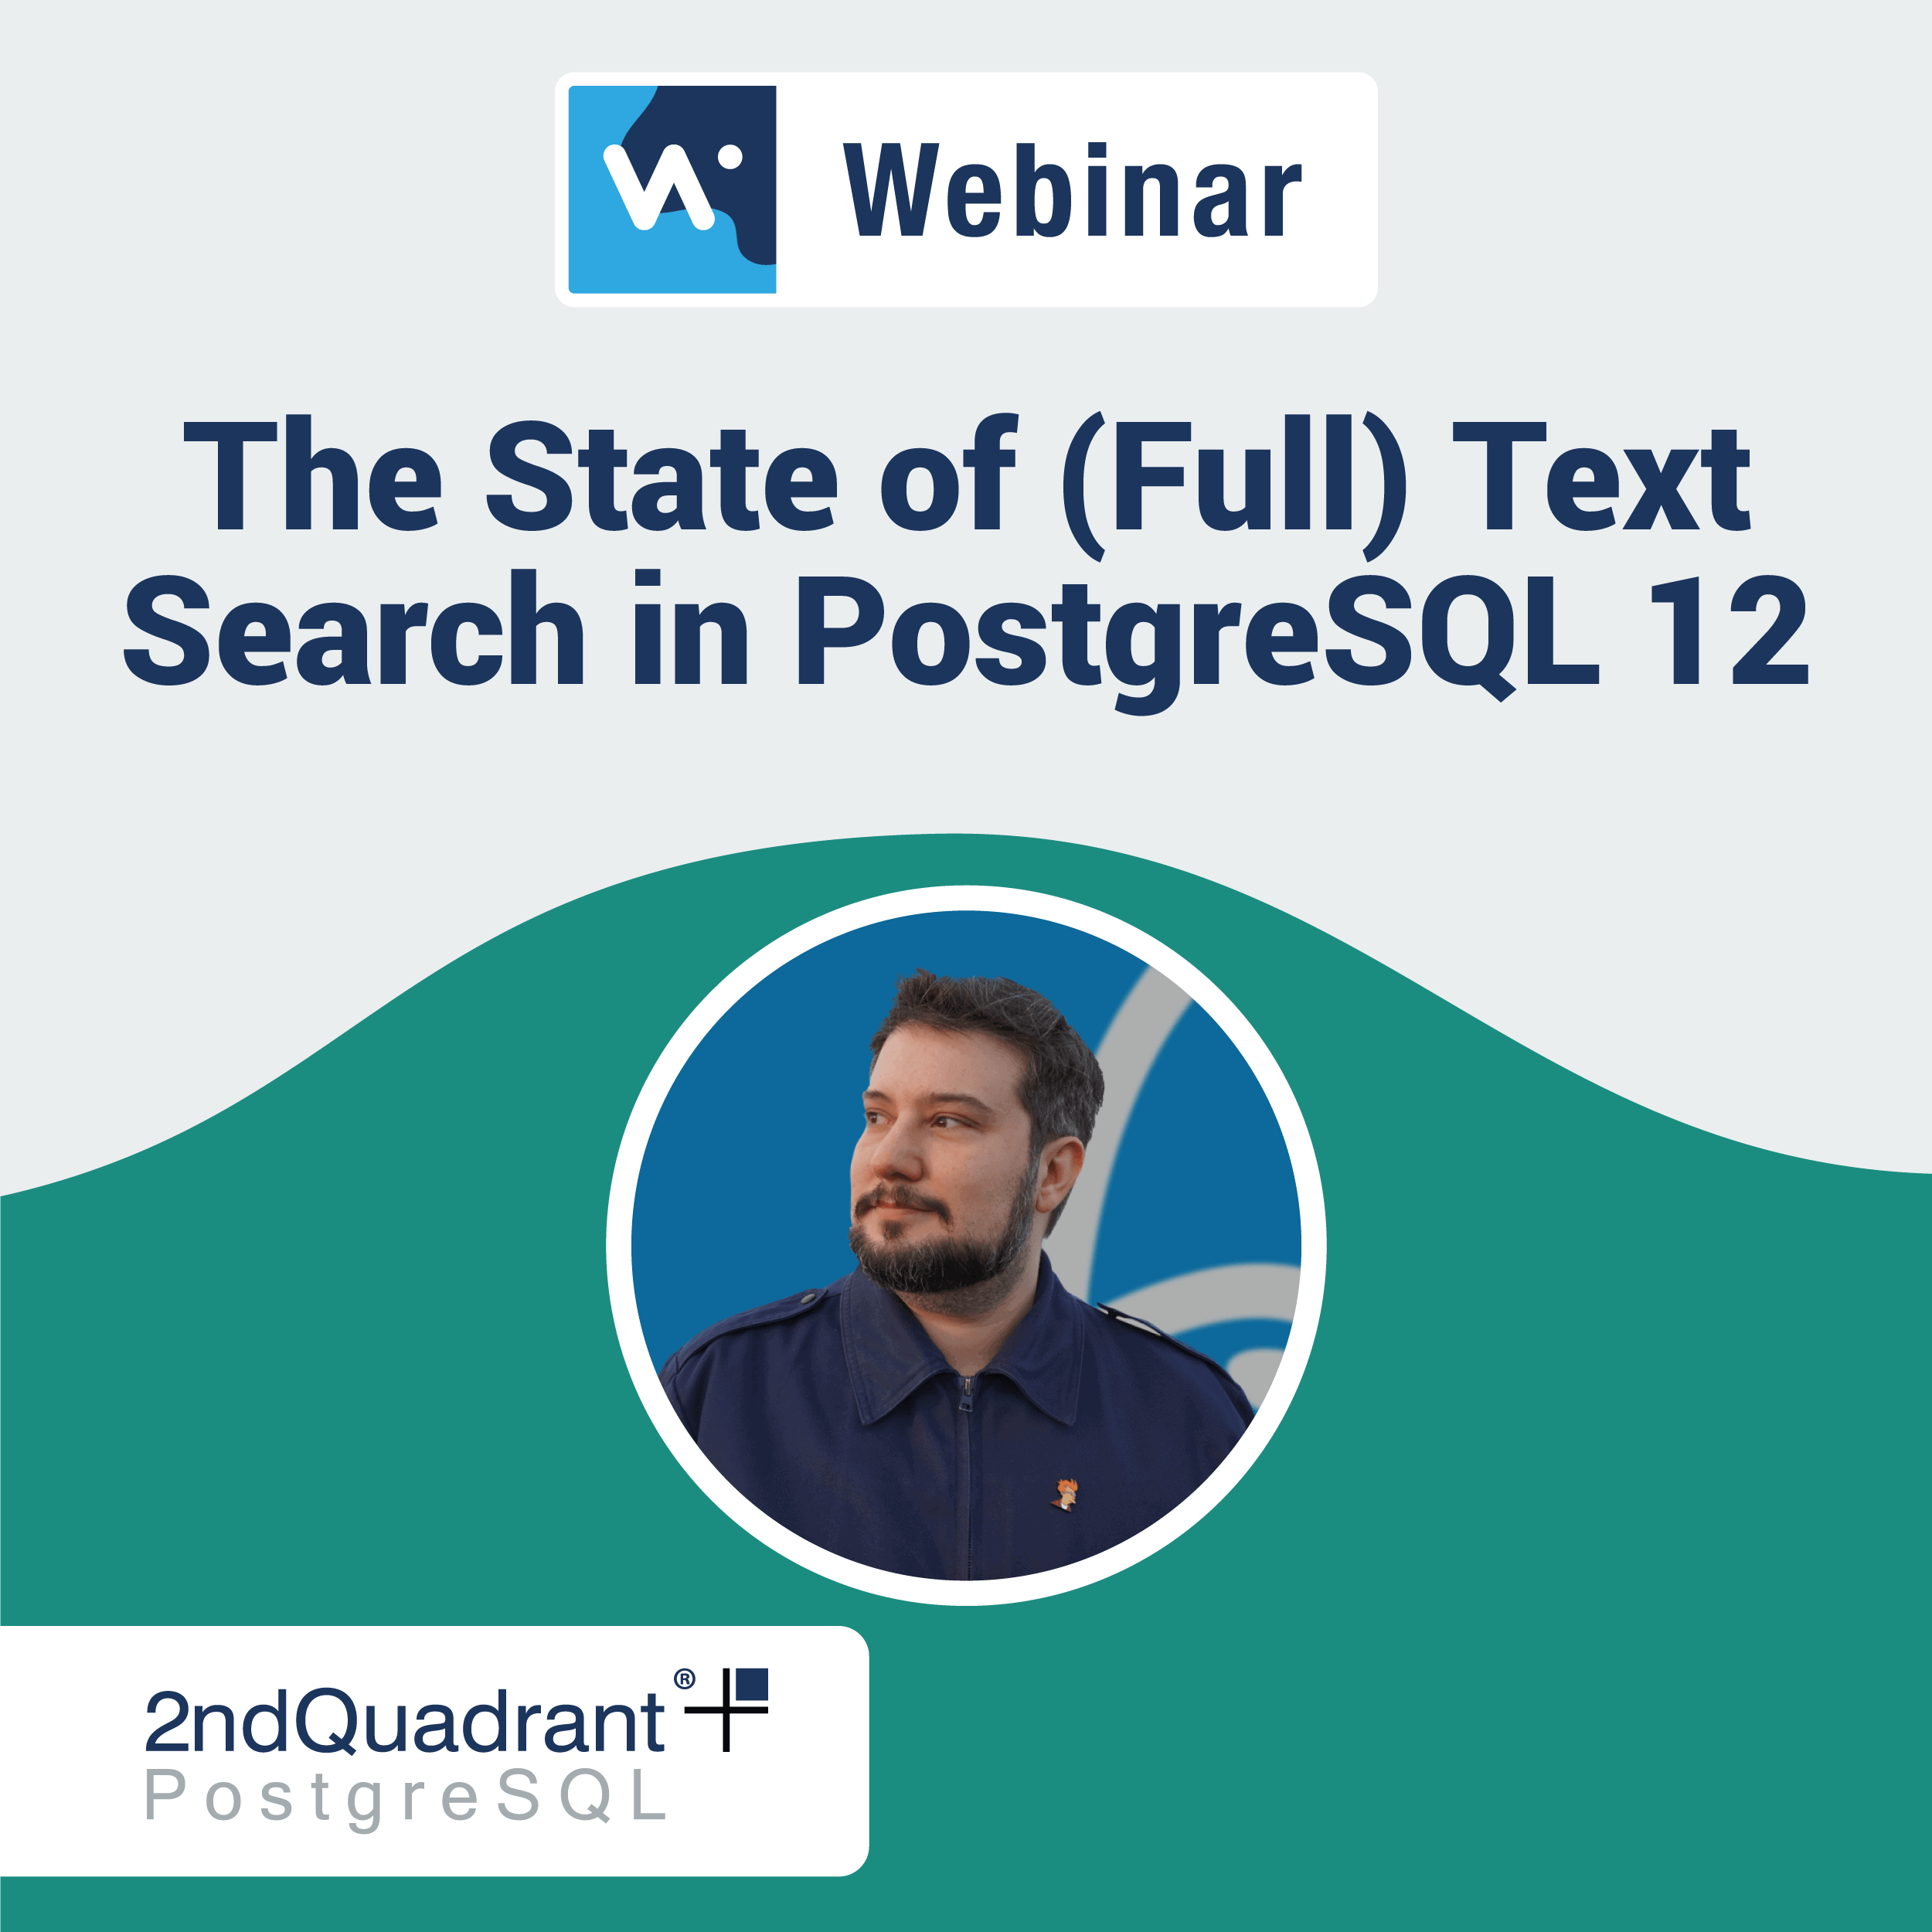 The State of (Full) Text Search in PostgreSQL 12